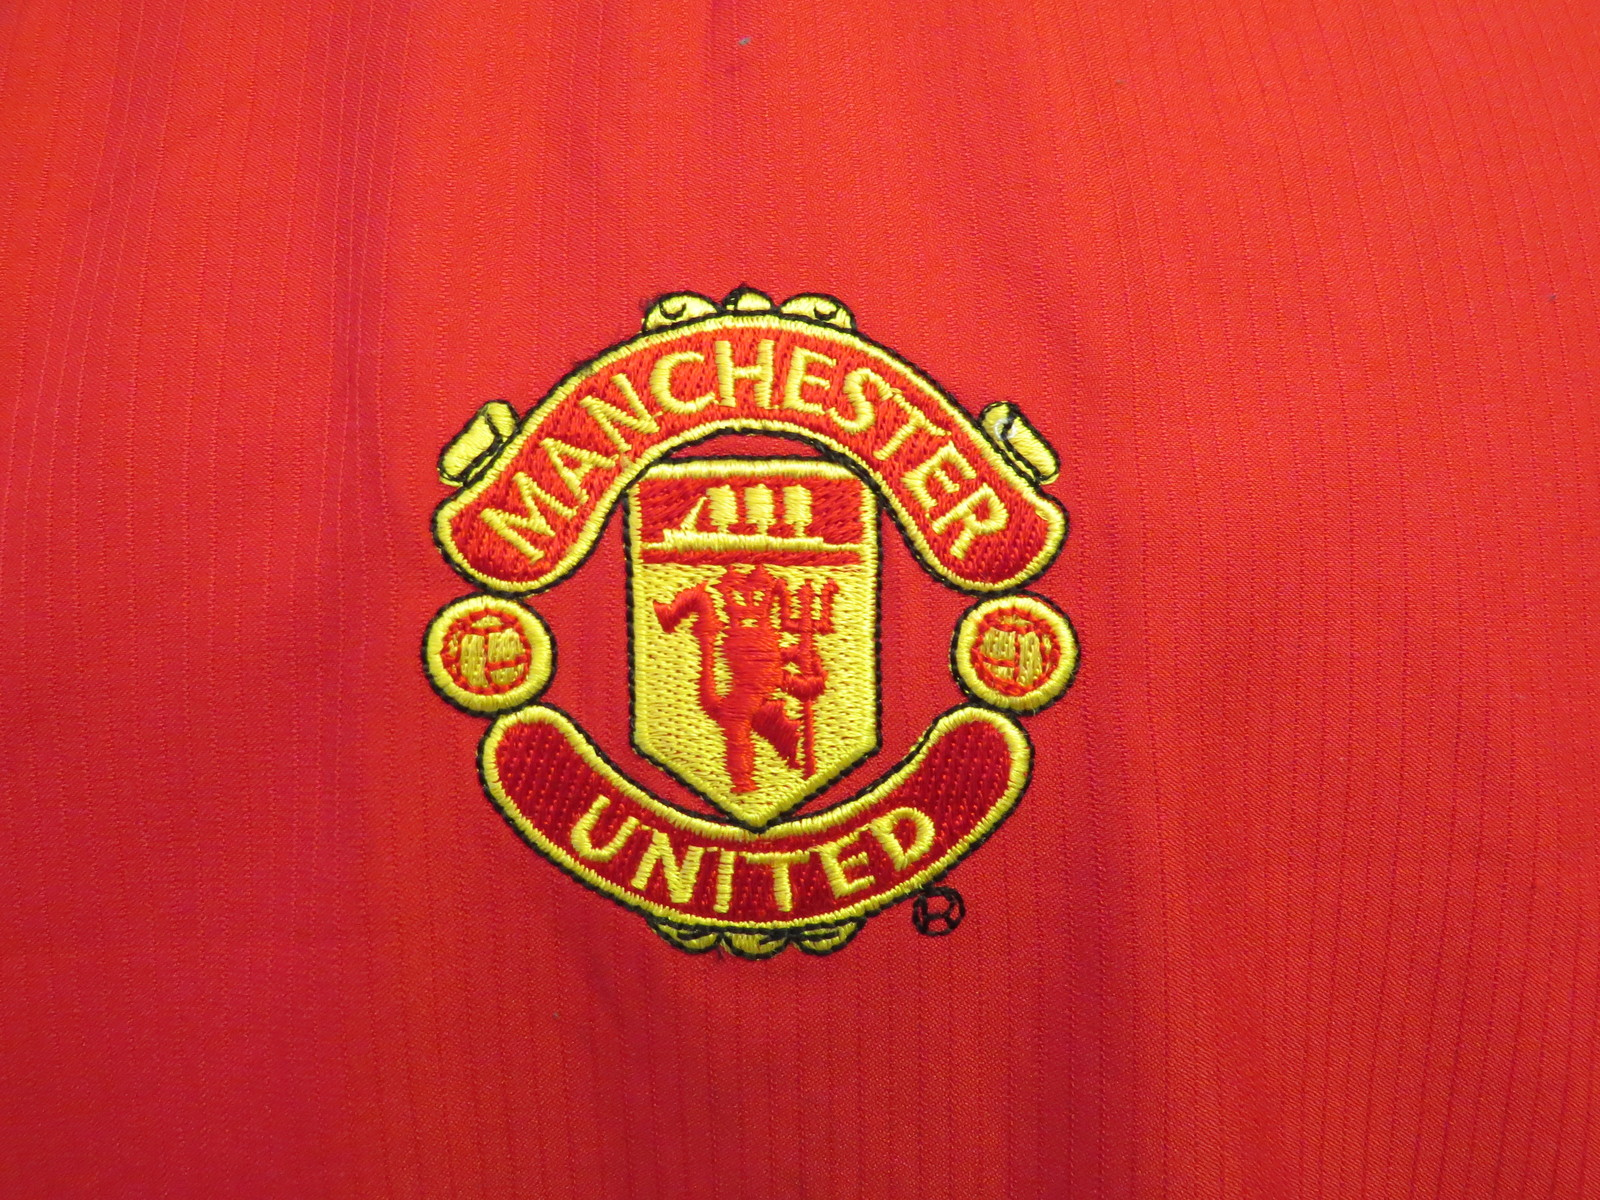 8442f354f Manchester United Jersey - 2004 2005 Home Red Jersey - By Nike 90 - Men s